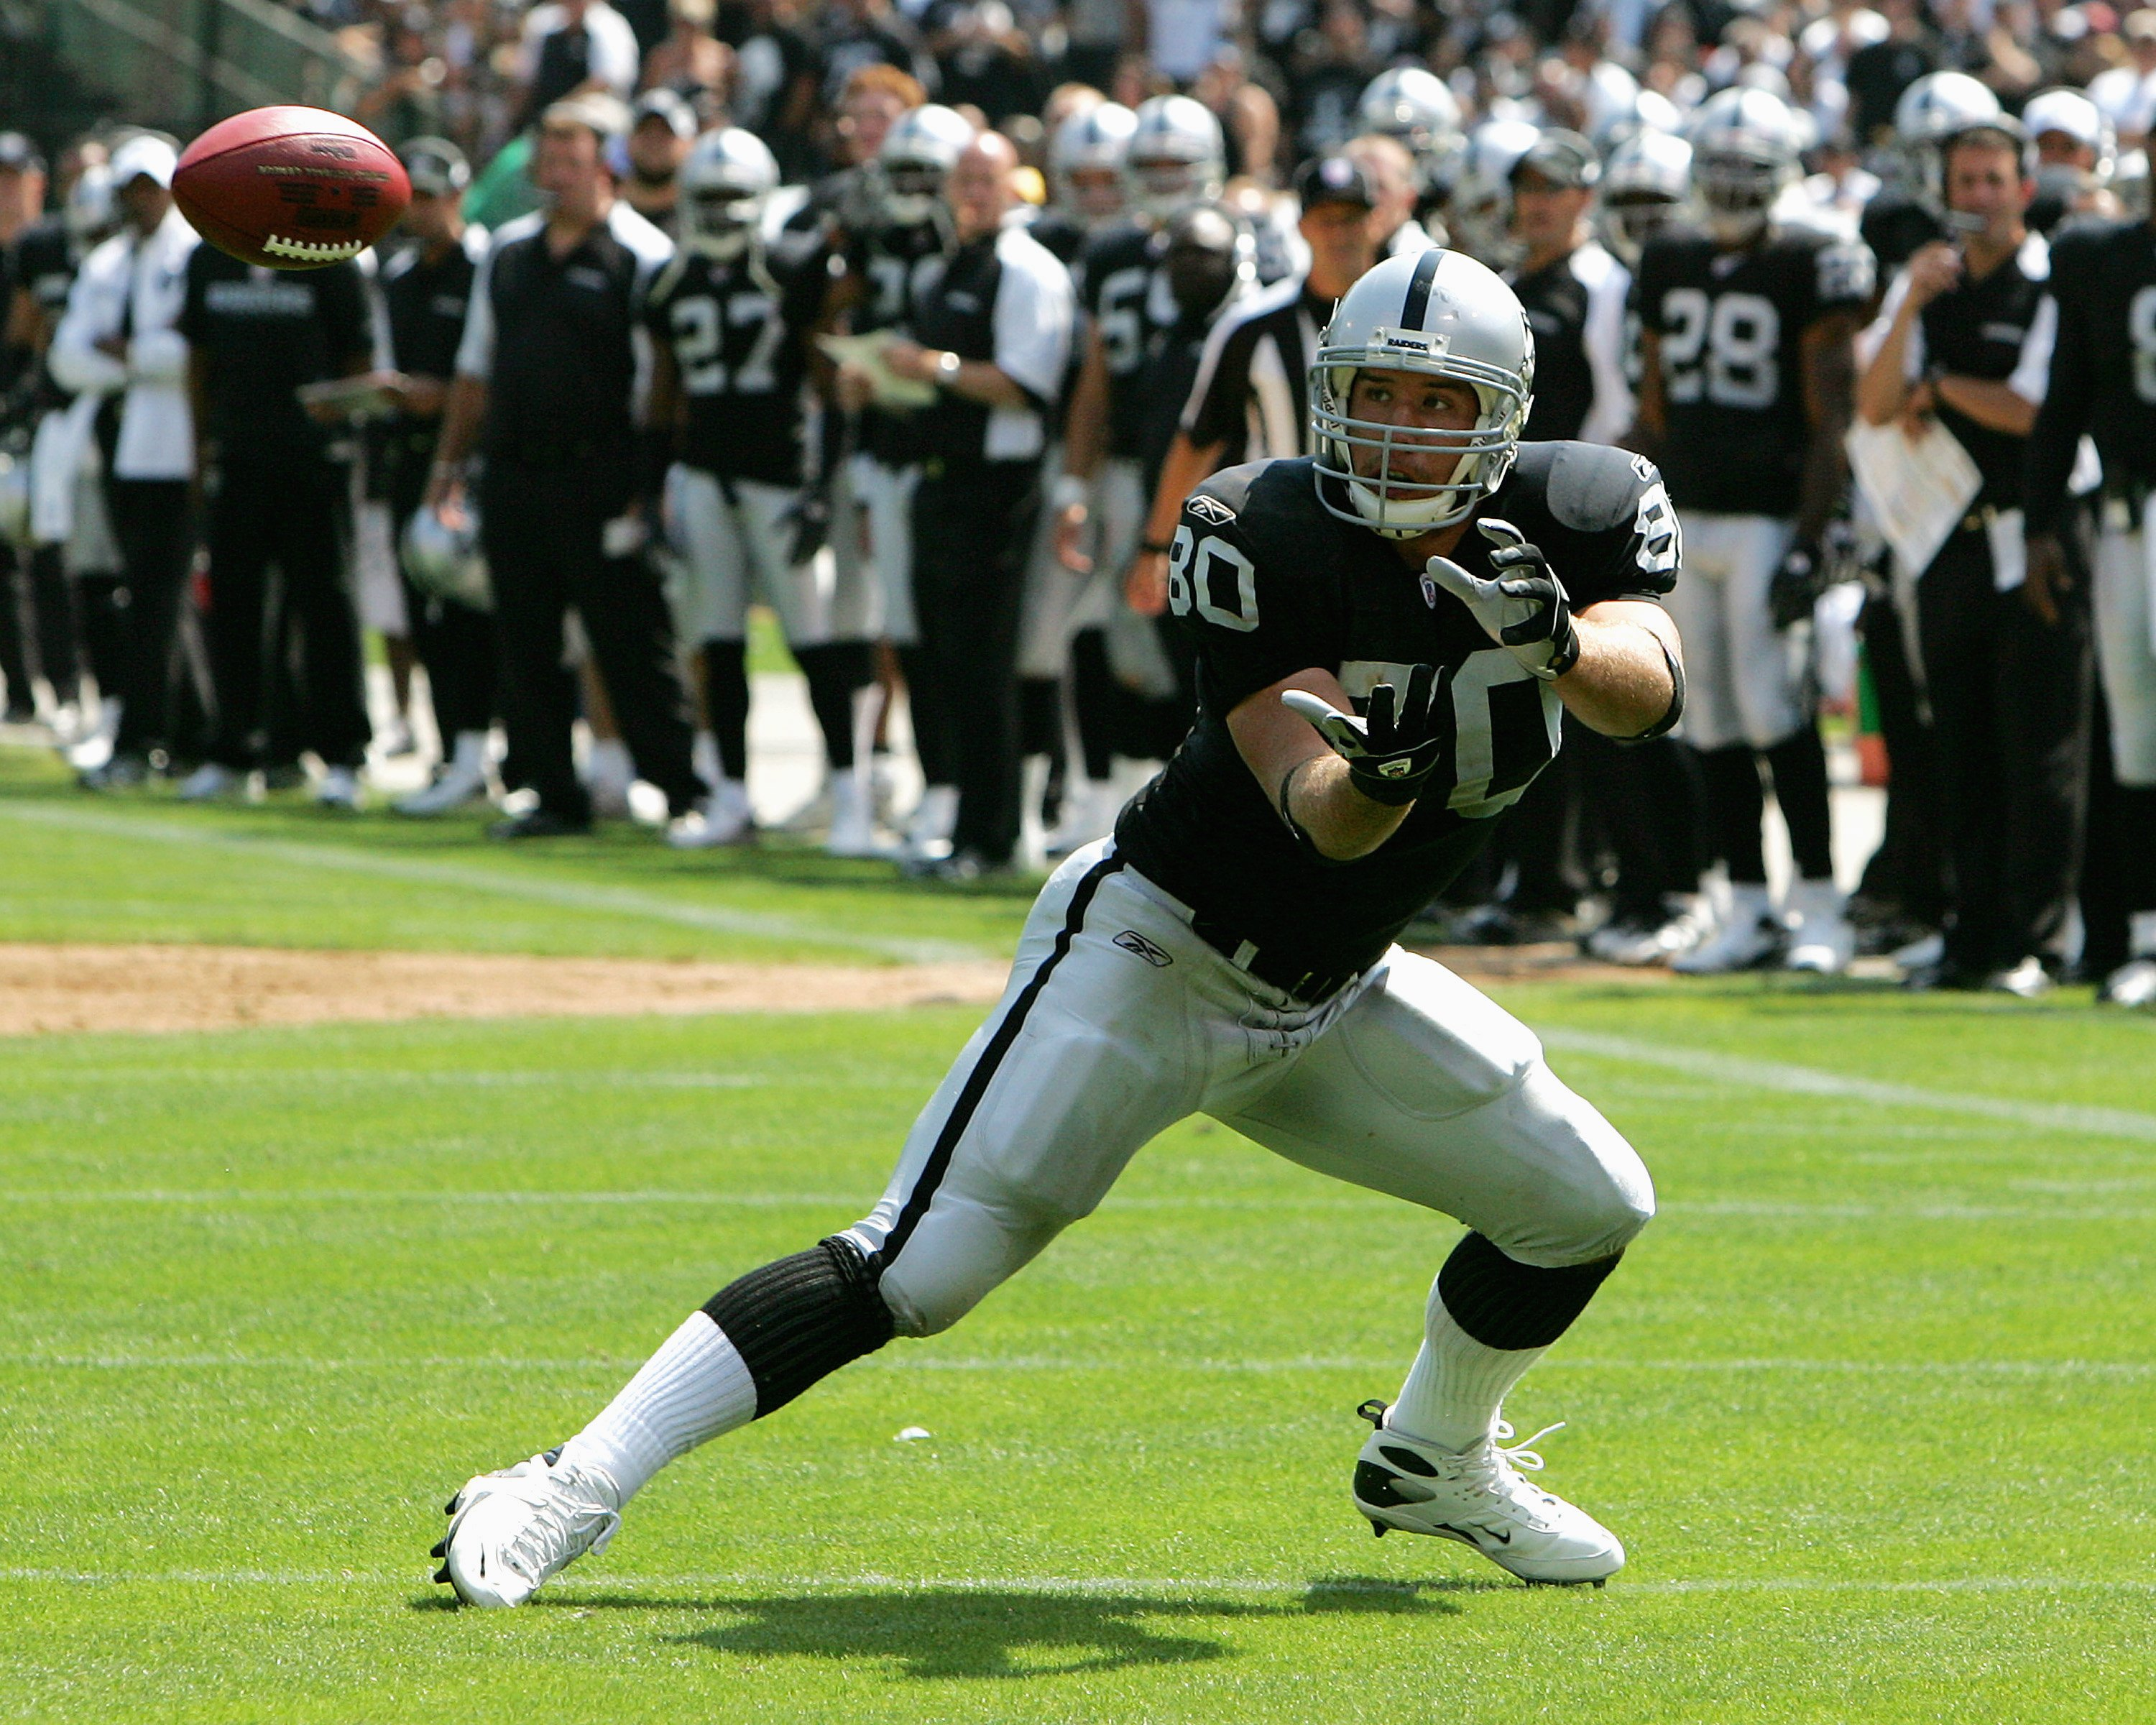 OAKLAND, CA - SEPTEMBER 9:  Rookie tight end Zach Miller #80 of the Oakland Raiders awaits a pass against the Detroit Lions at the McAfee Coliseum on September 9, 2007 in Oakland, California.  The Lions defeated the Raiders 36-21 (Photo by Kevin Terrell/G